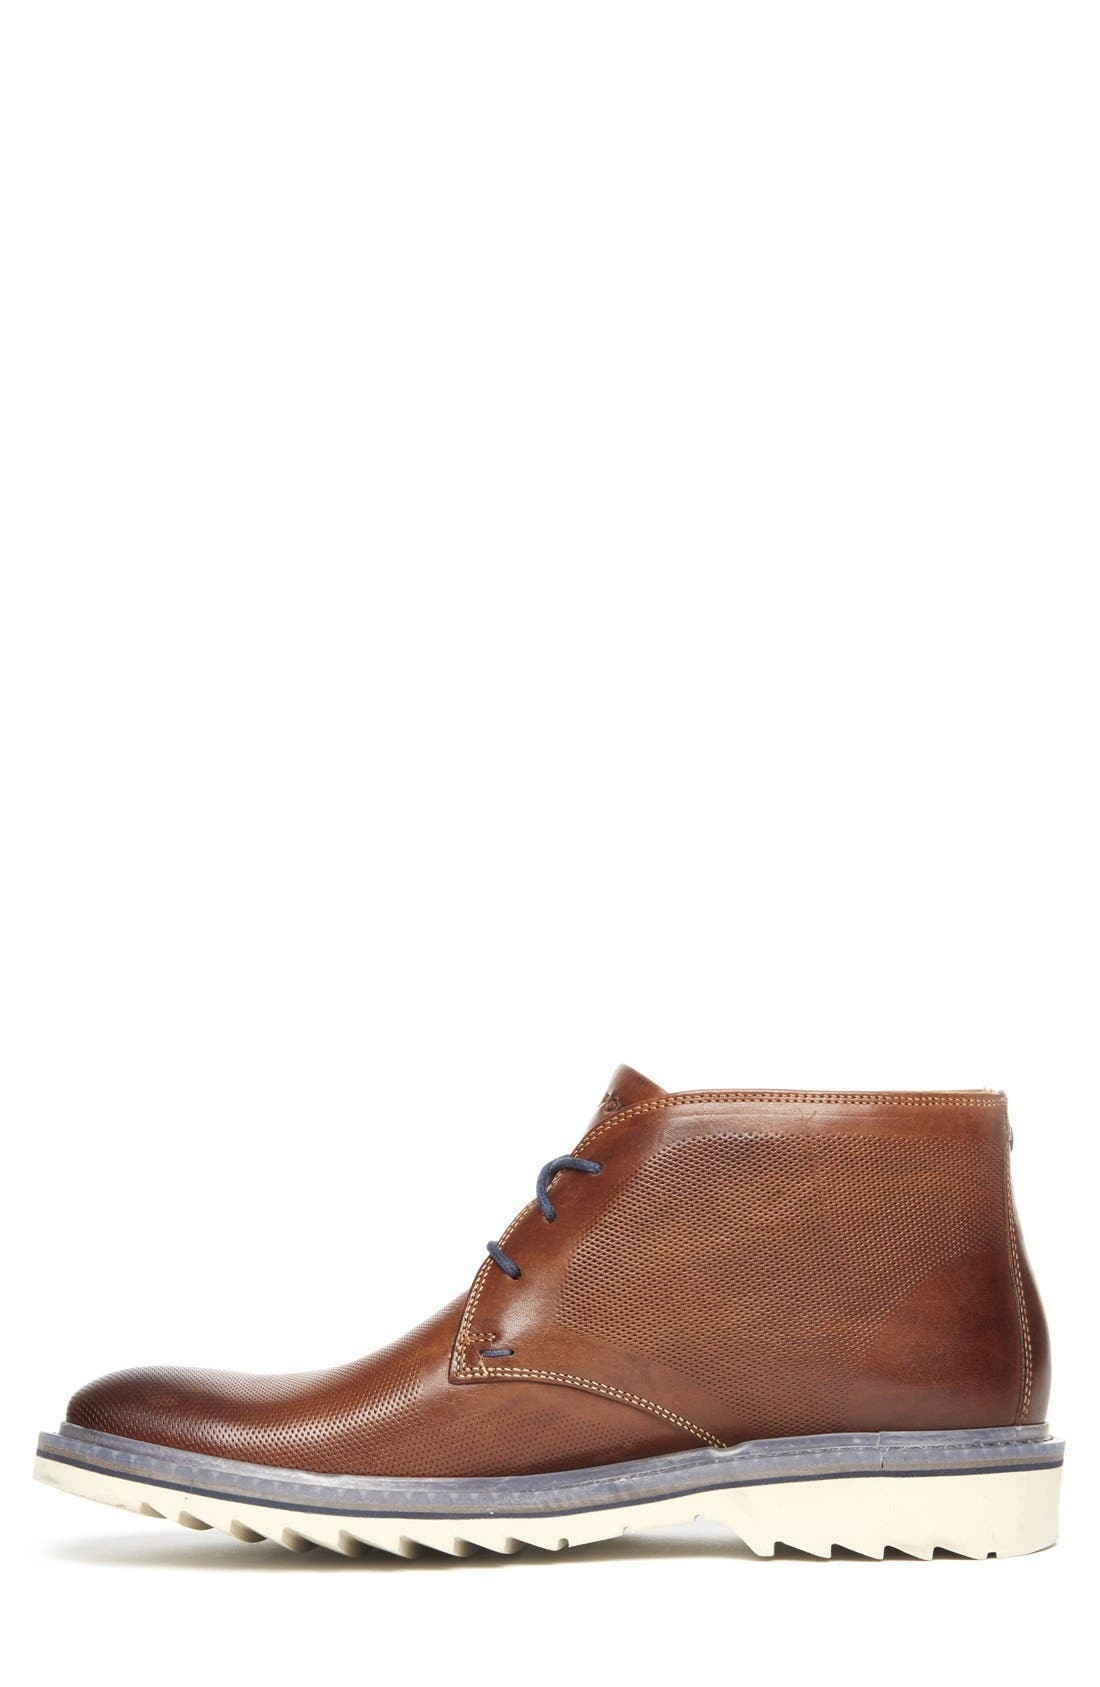 Jaxson Chukka Boot,                             Alternate thumbnail 7, color,                             200